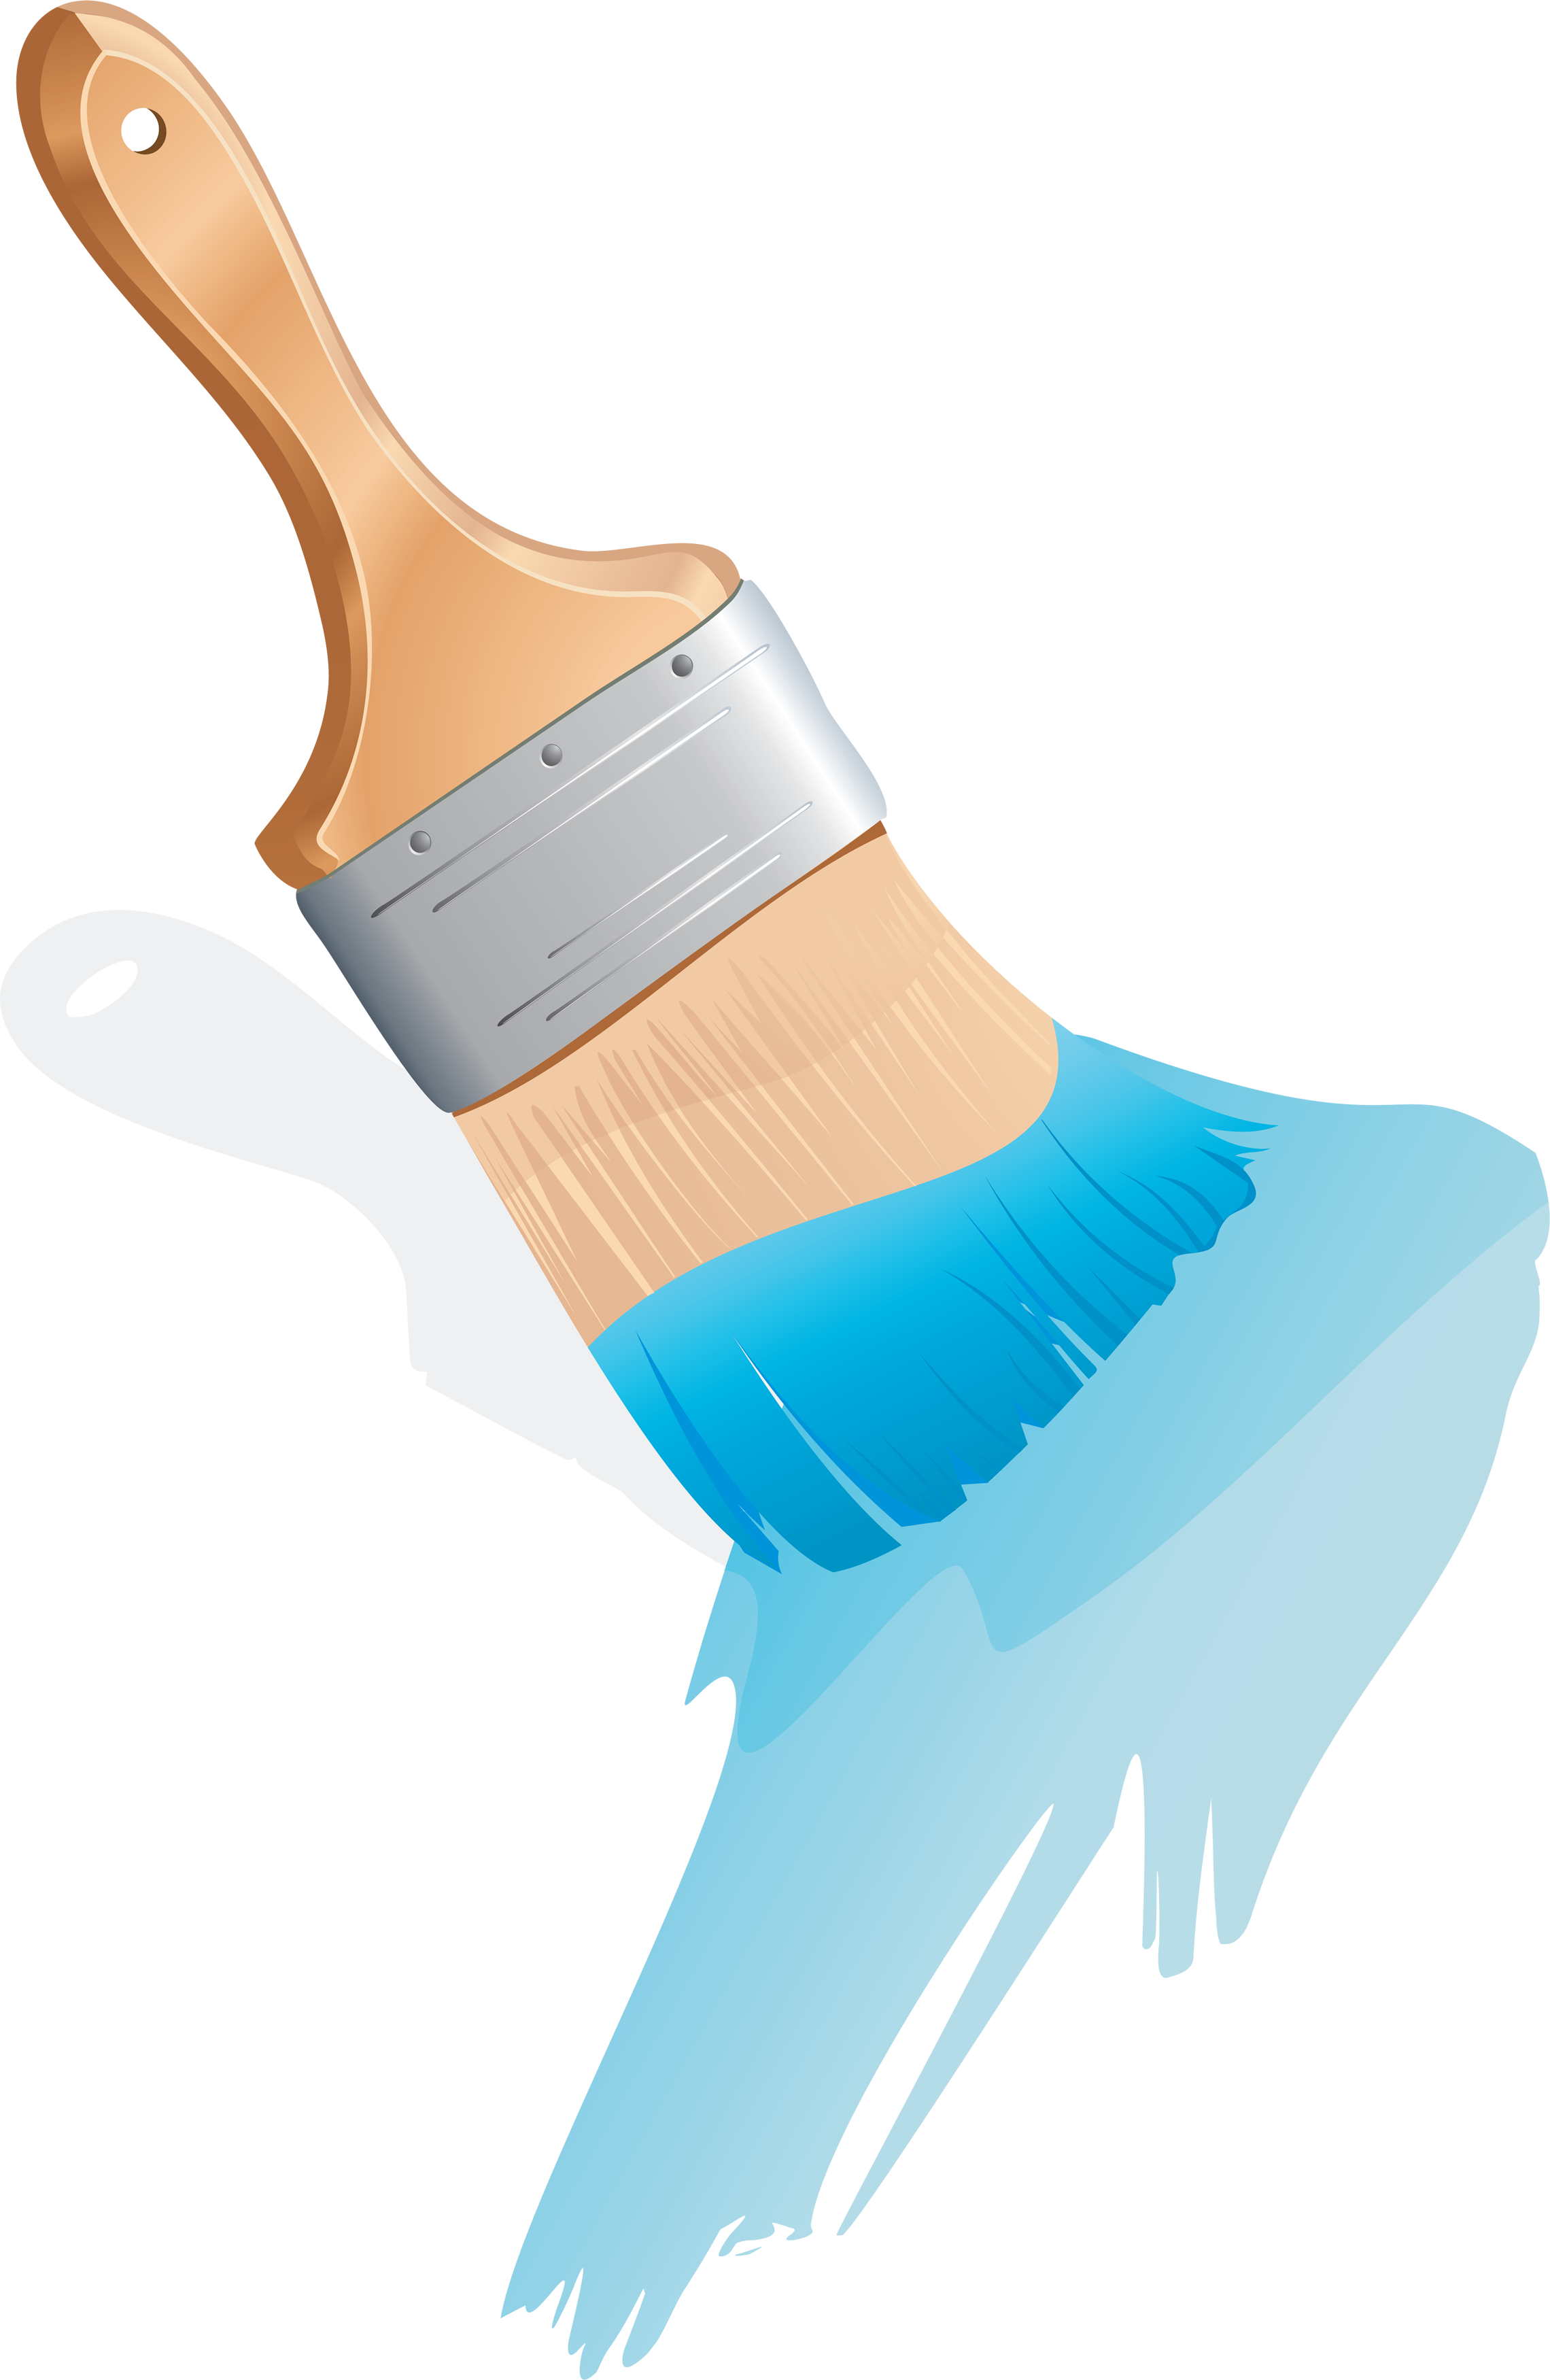 download paint brush image png #8733